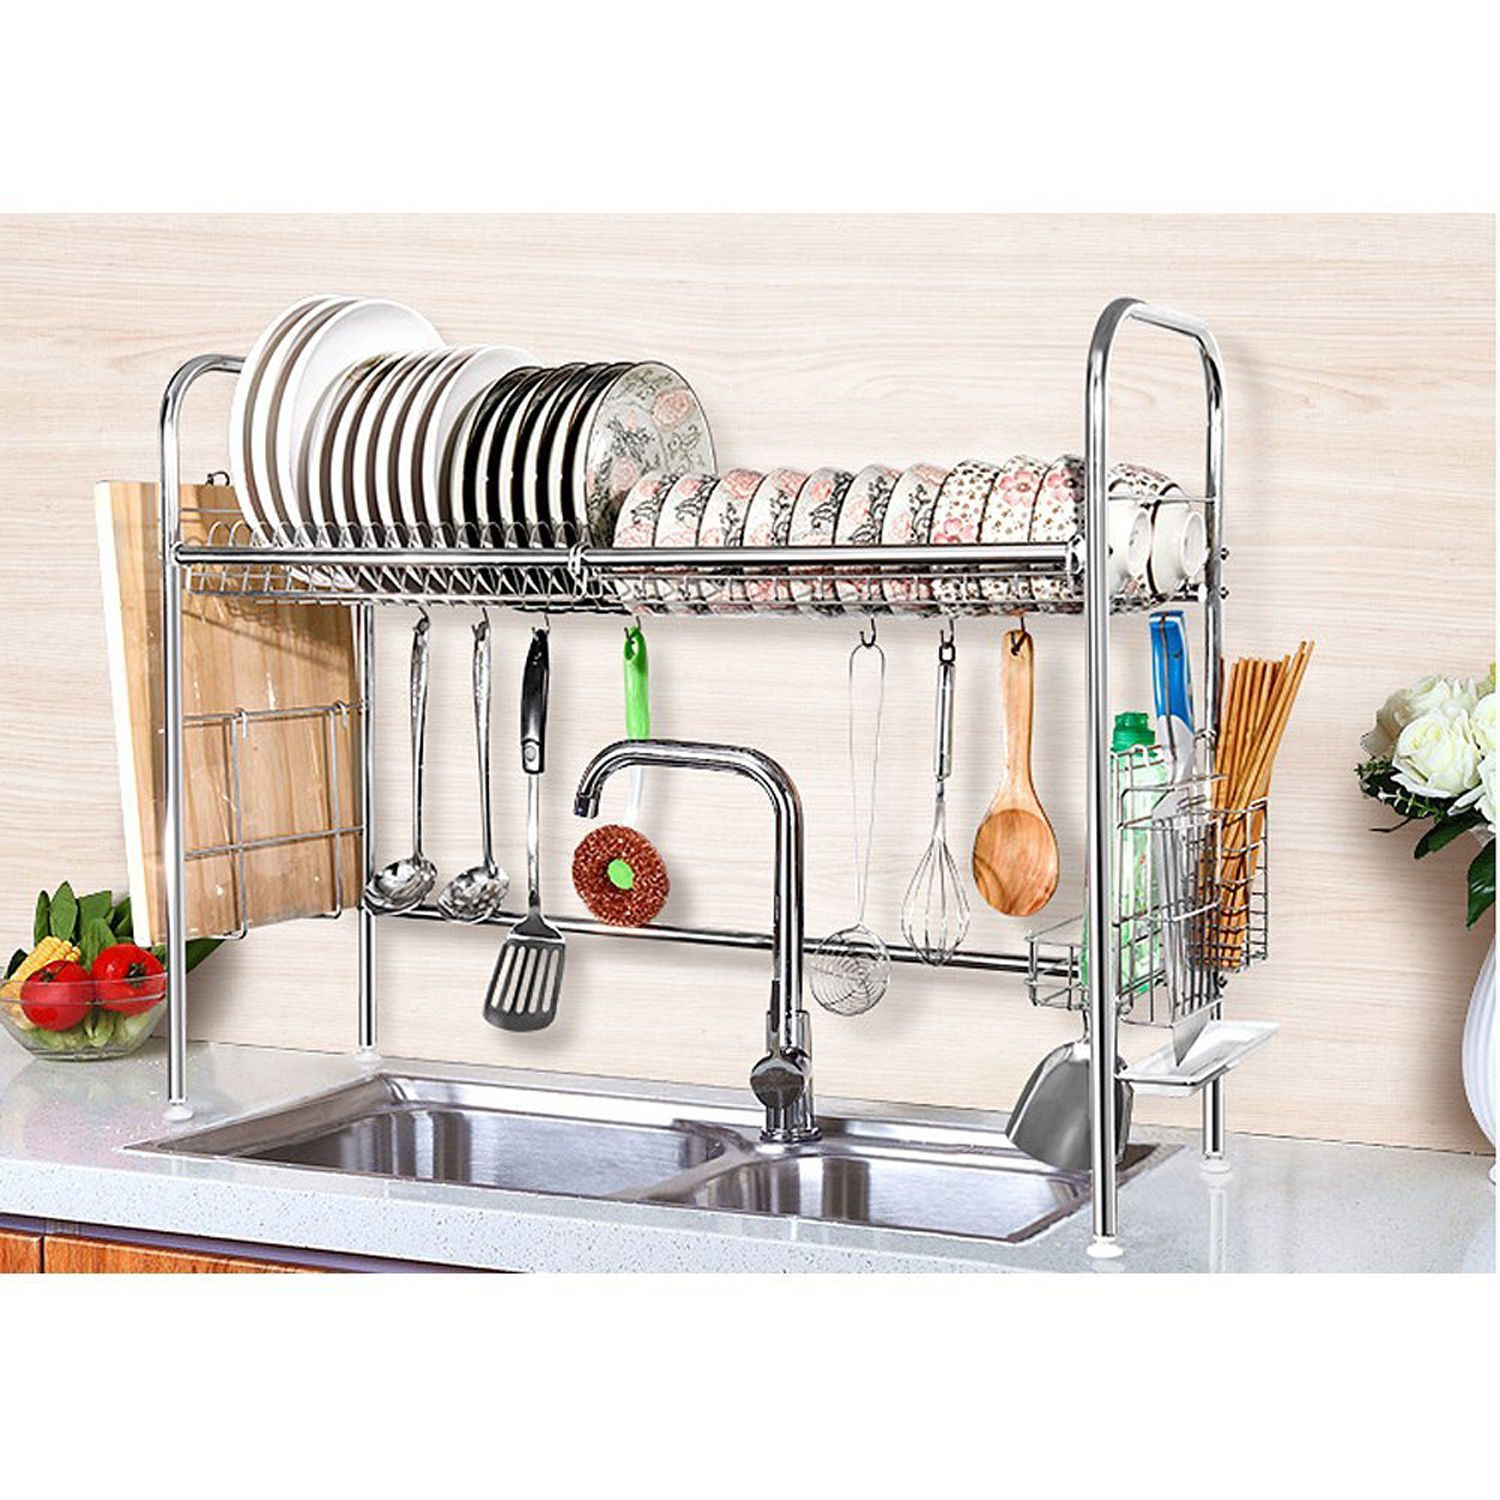 Dish Drying Rack Stainless Steel Dish Storage with Chopstick Holder